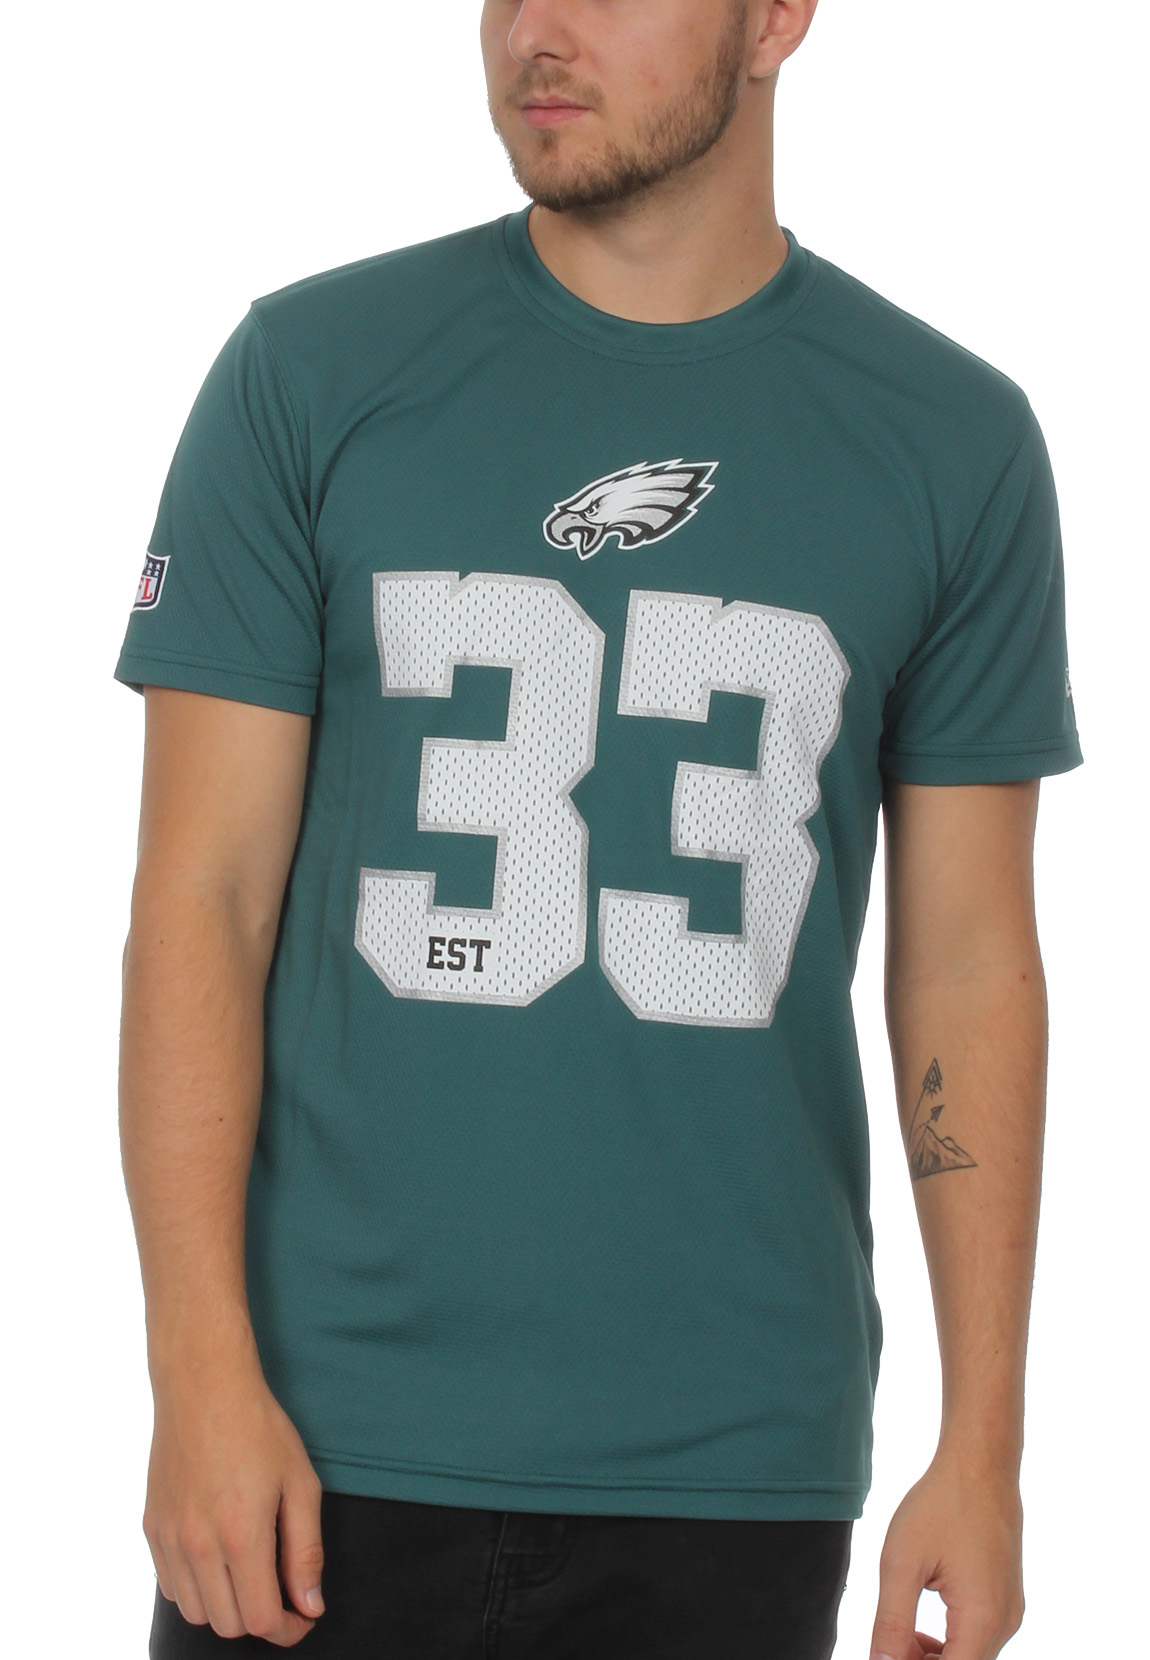 buy popular 63af7 777d6 Details about New Era NFL Team Supporters Men's T-Shirt Philadelphia Eagles  Green